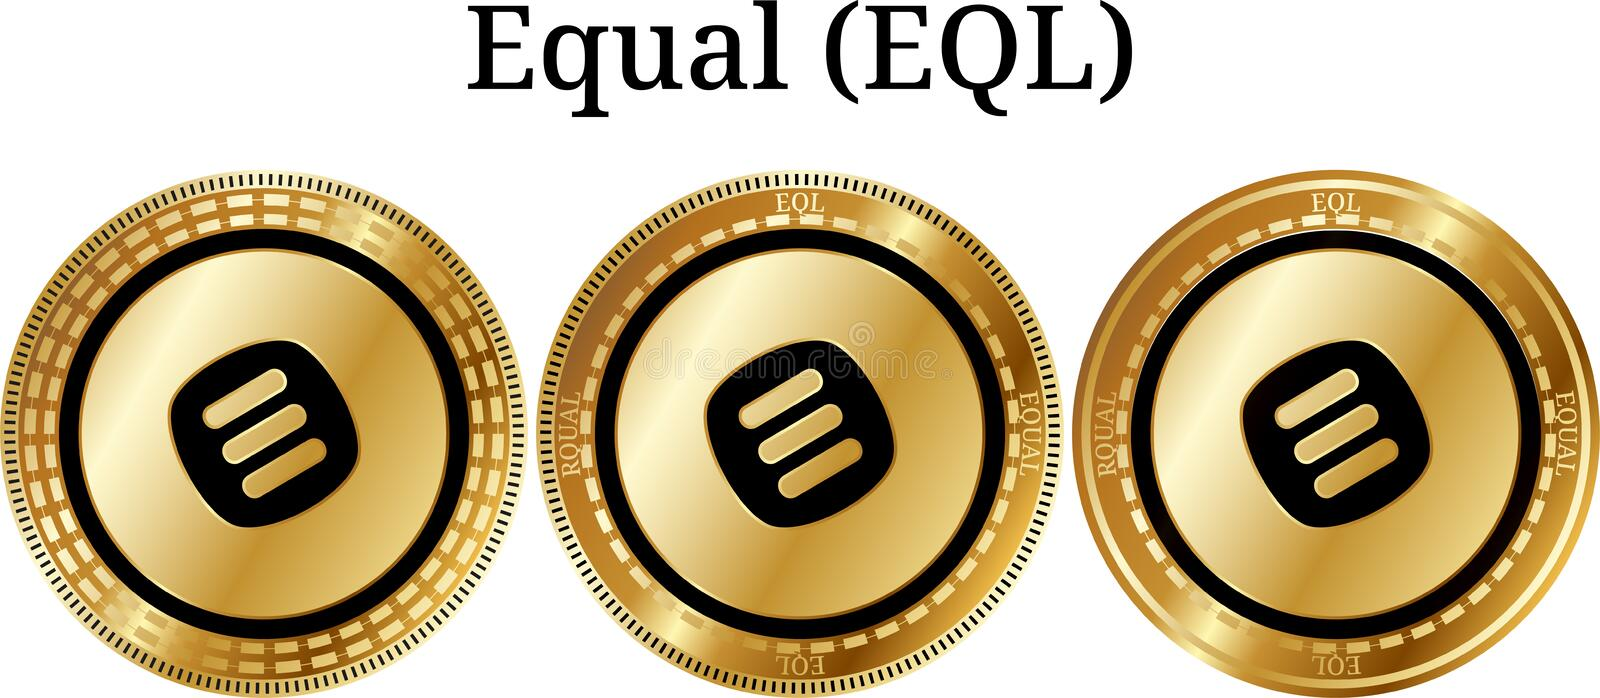 Set of physical golden coin Equal (EQL). Digital cryptocurrency. Equal (EQL) icon set. Vector illustration isolated on white background stock illustration